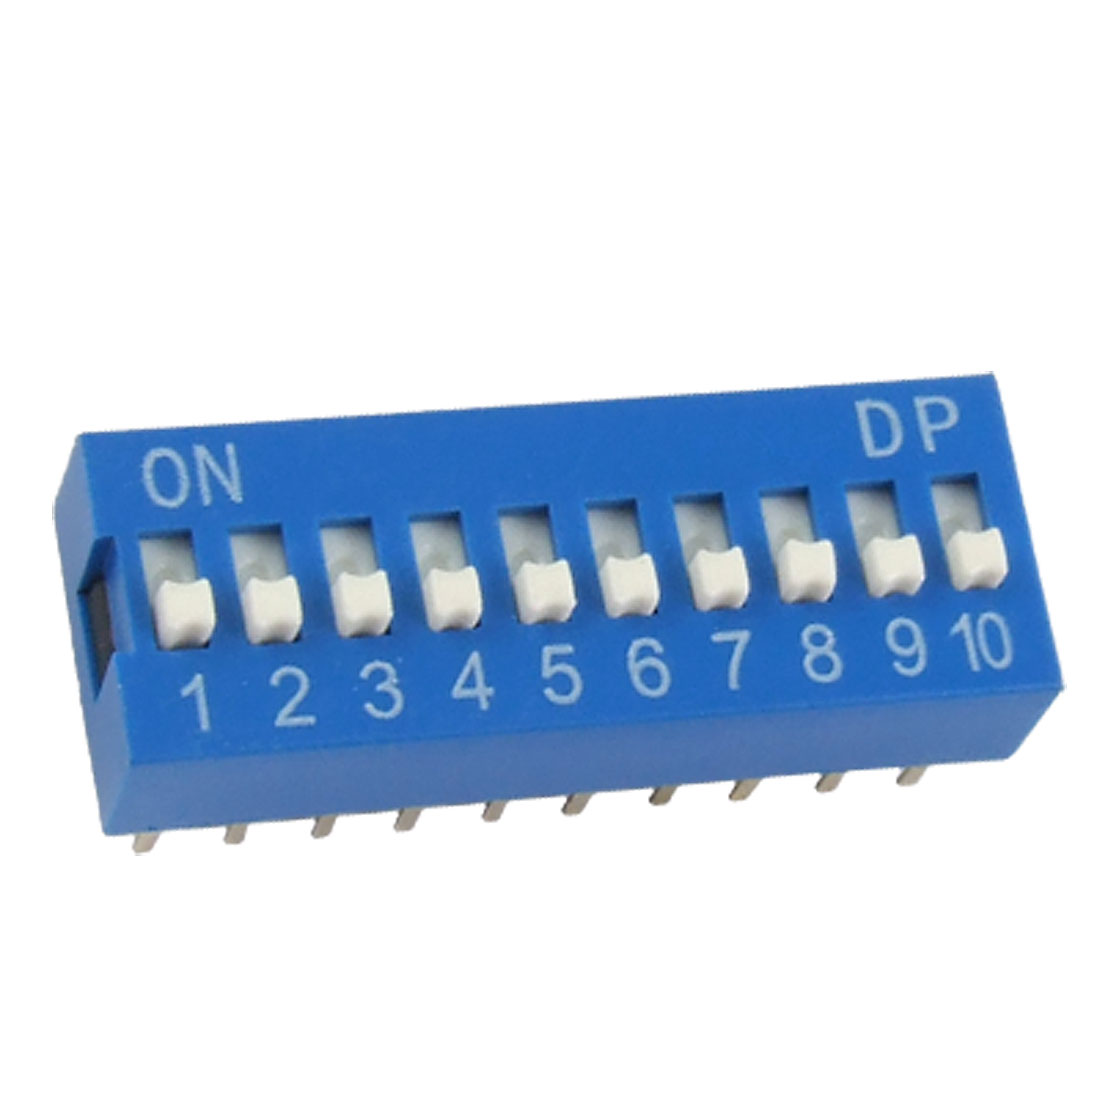 2.54mm Pitch 10 Position Slide Style DIP Switches Blue 10Pcs